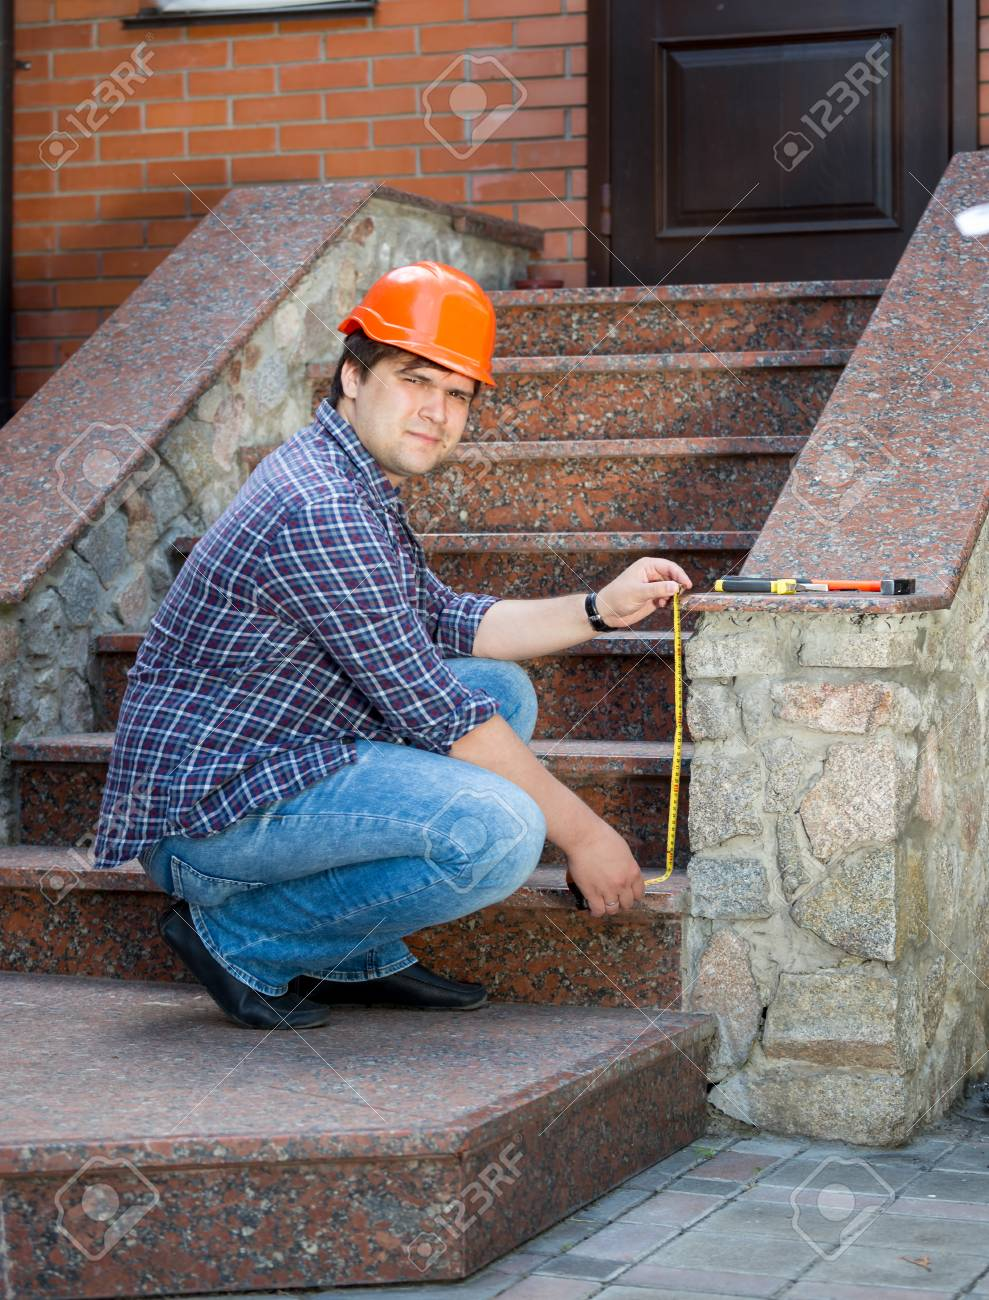 Stock Photo   Young Contractor Worker Measuring Stone Staircase With  Measuring Tape